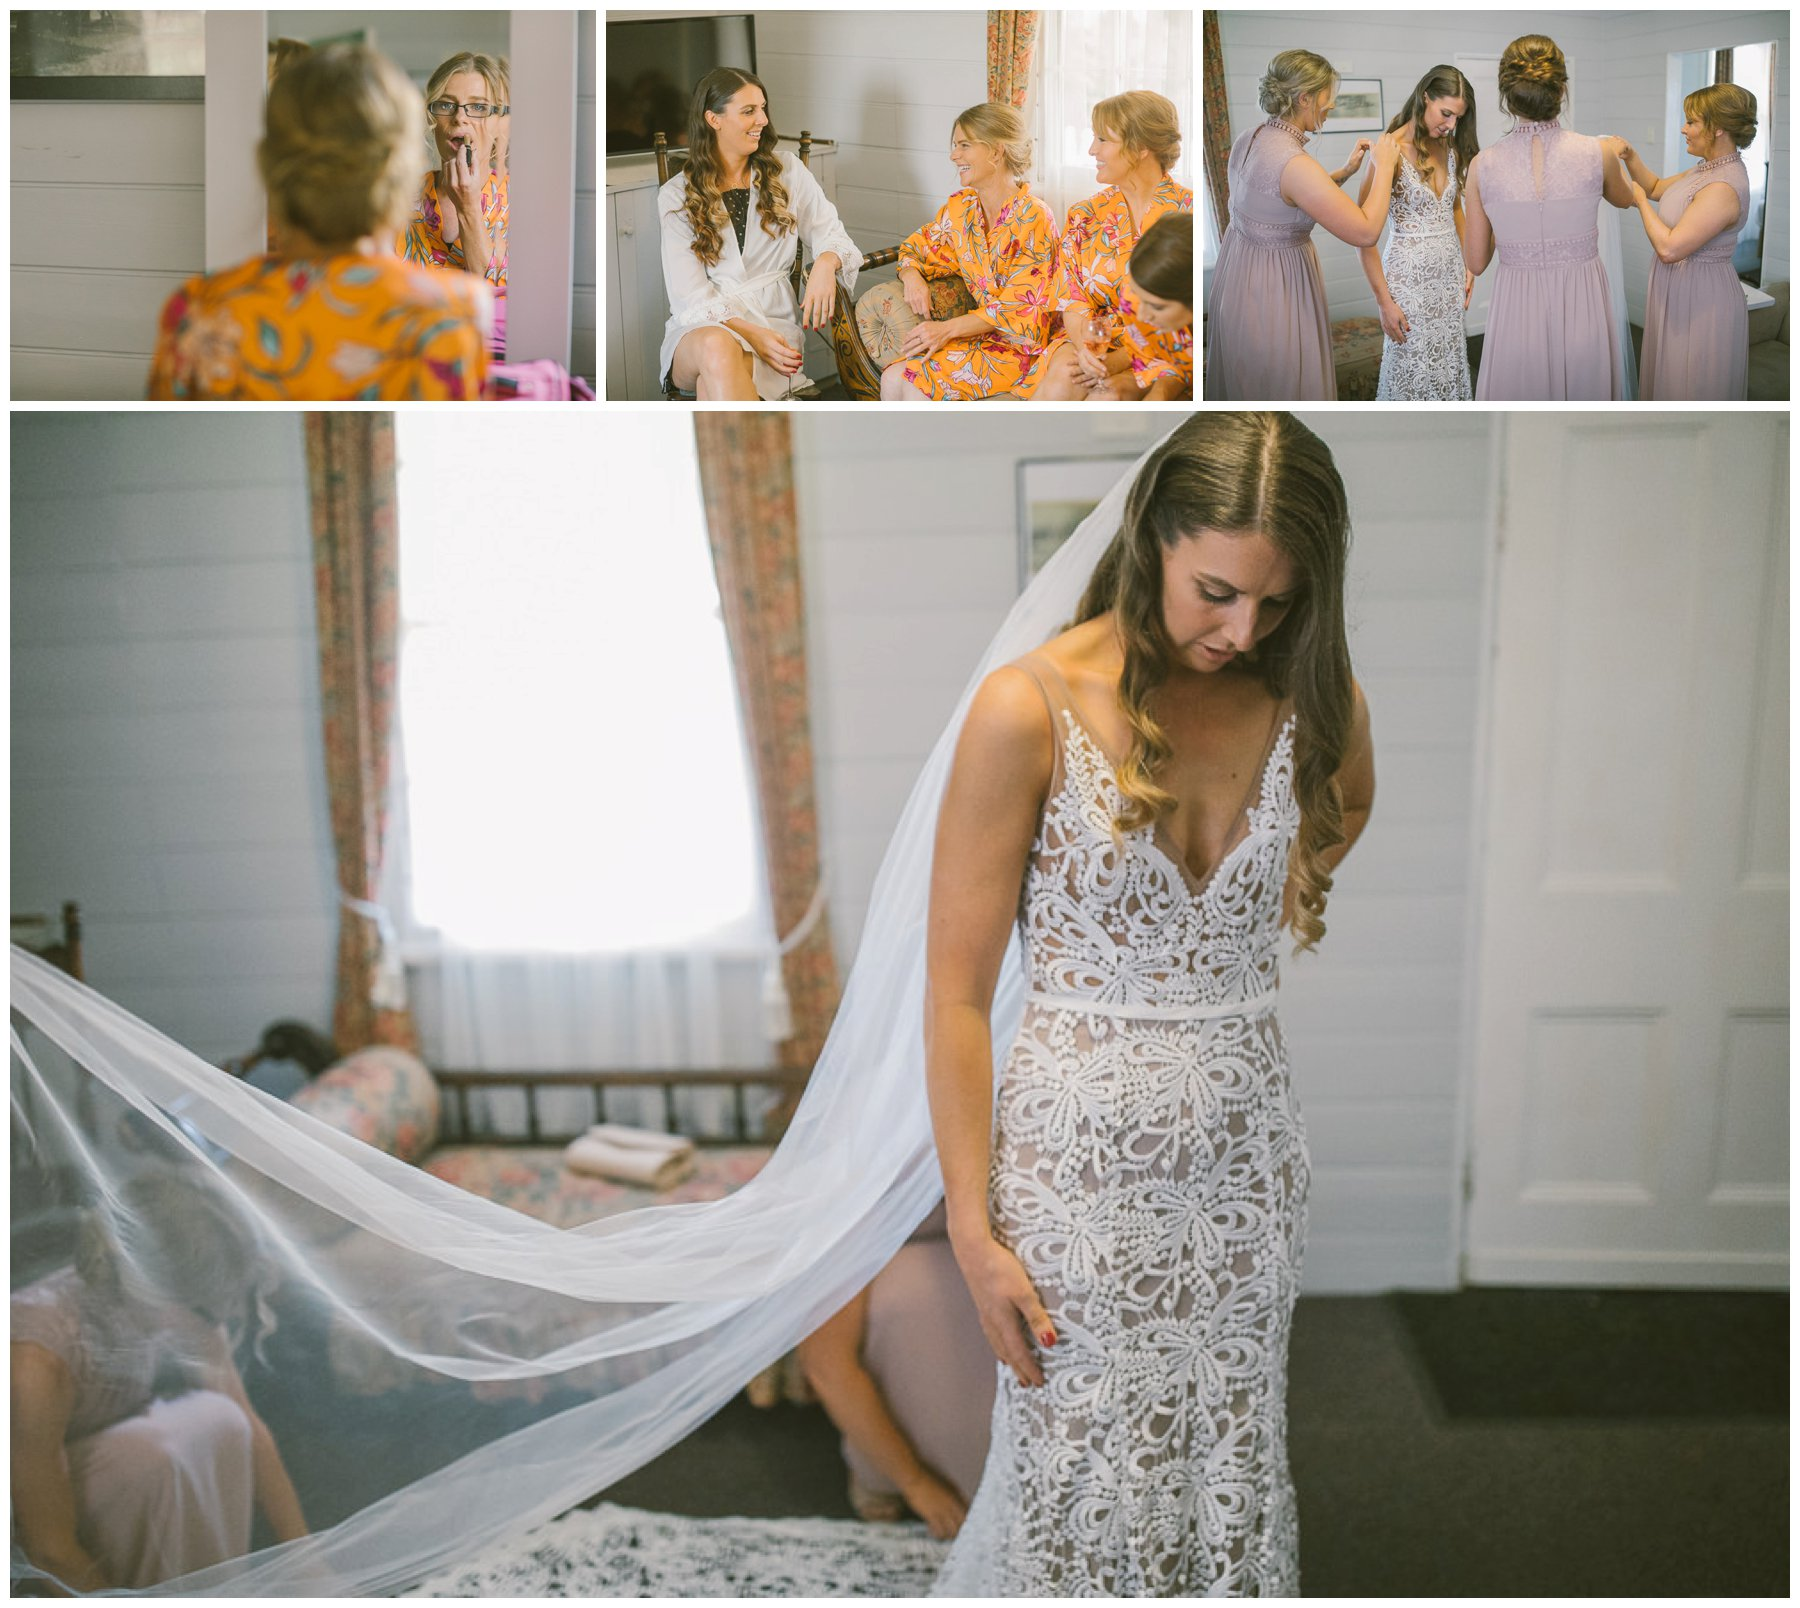 Patrick and Hollie, Coolangatta estate wedding, south coast wedding photographer, Southern Highlands wedding photographer, southern highlands photographer, bride, dress, bridal gown